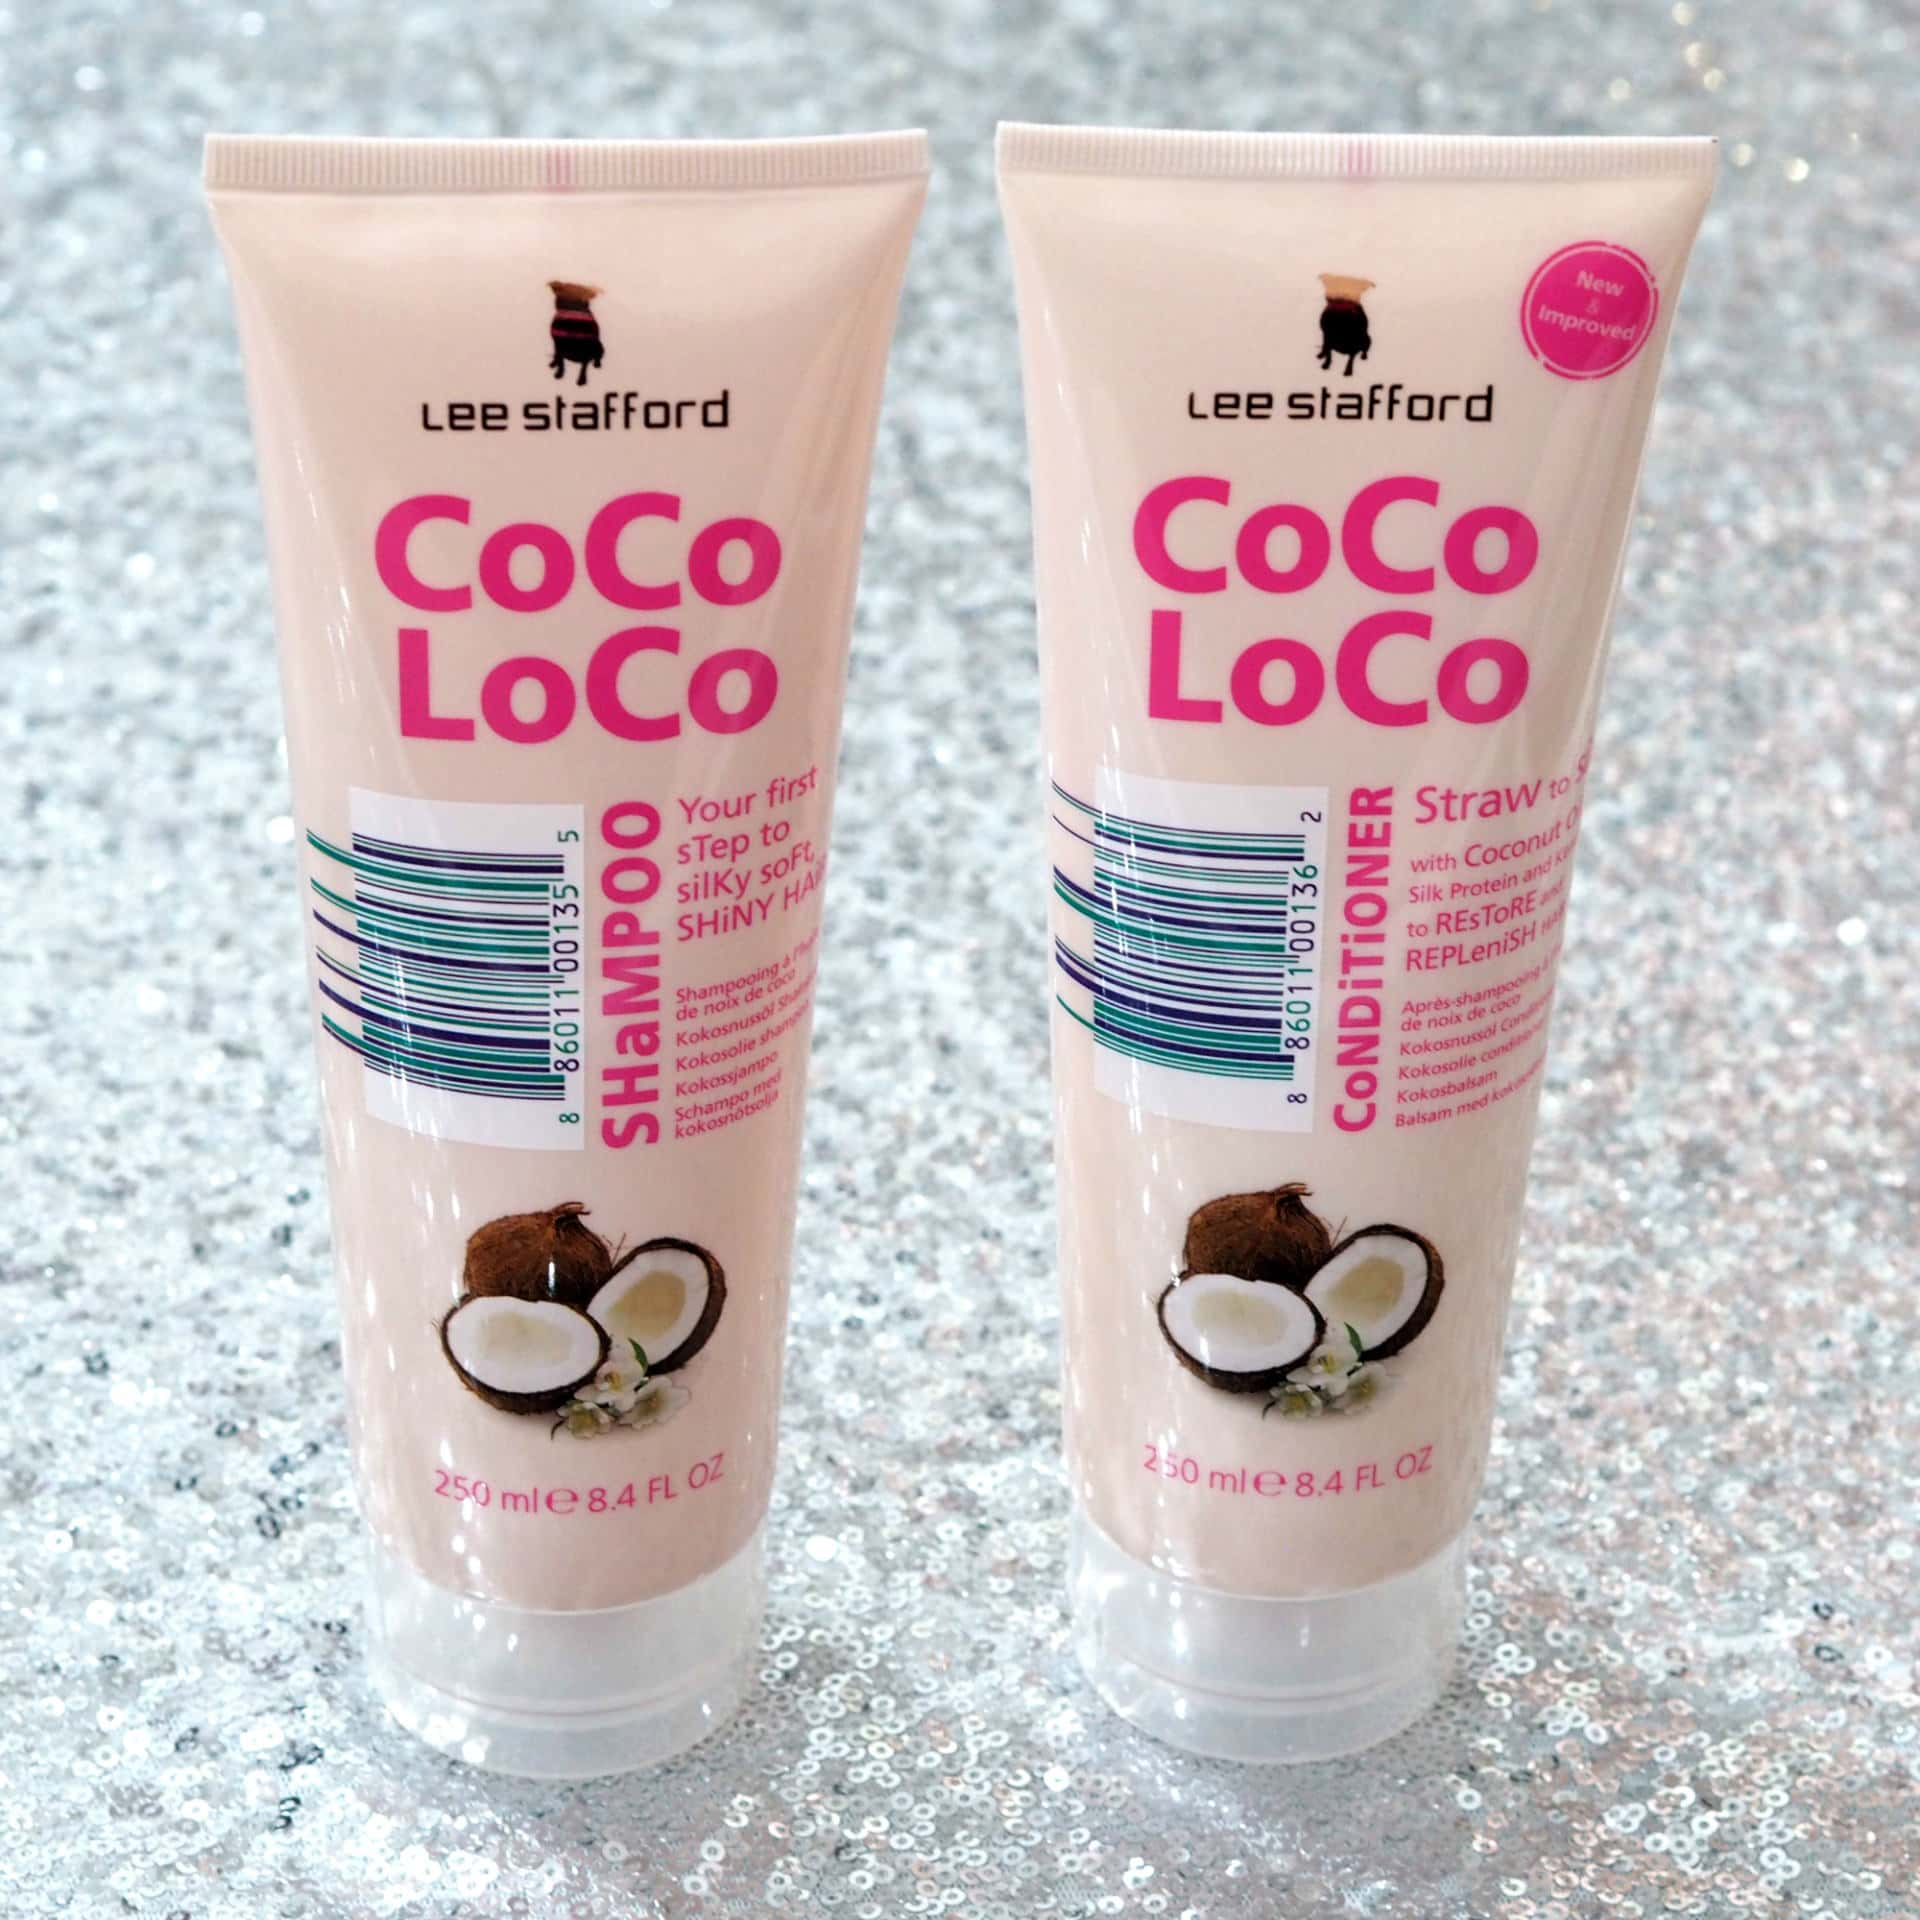 Lee Stafford Christmas Gift Sets - Hair Goals on the Go & You Drive Me Coconuts